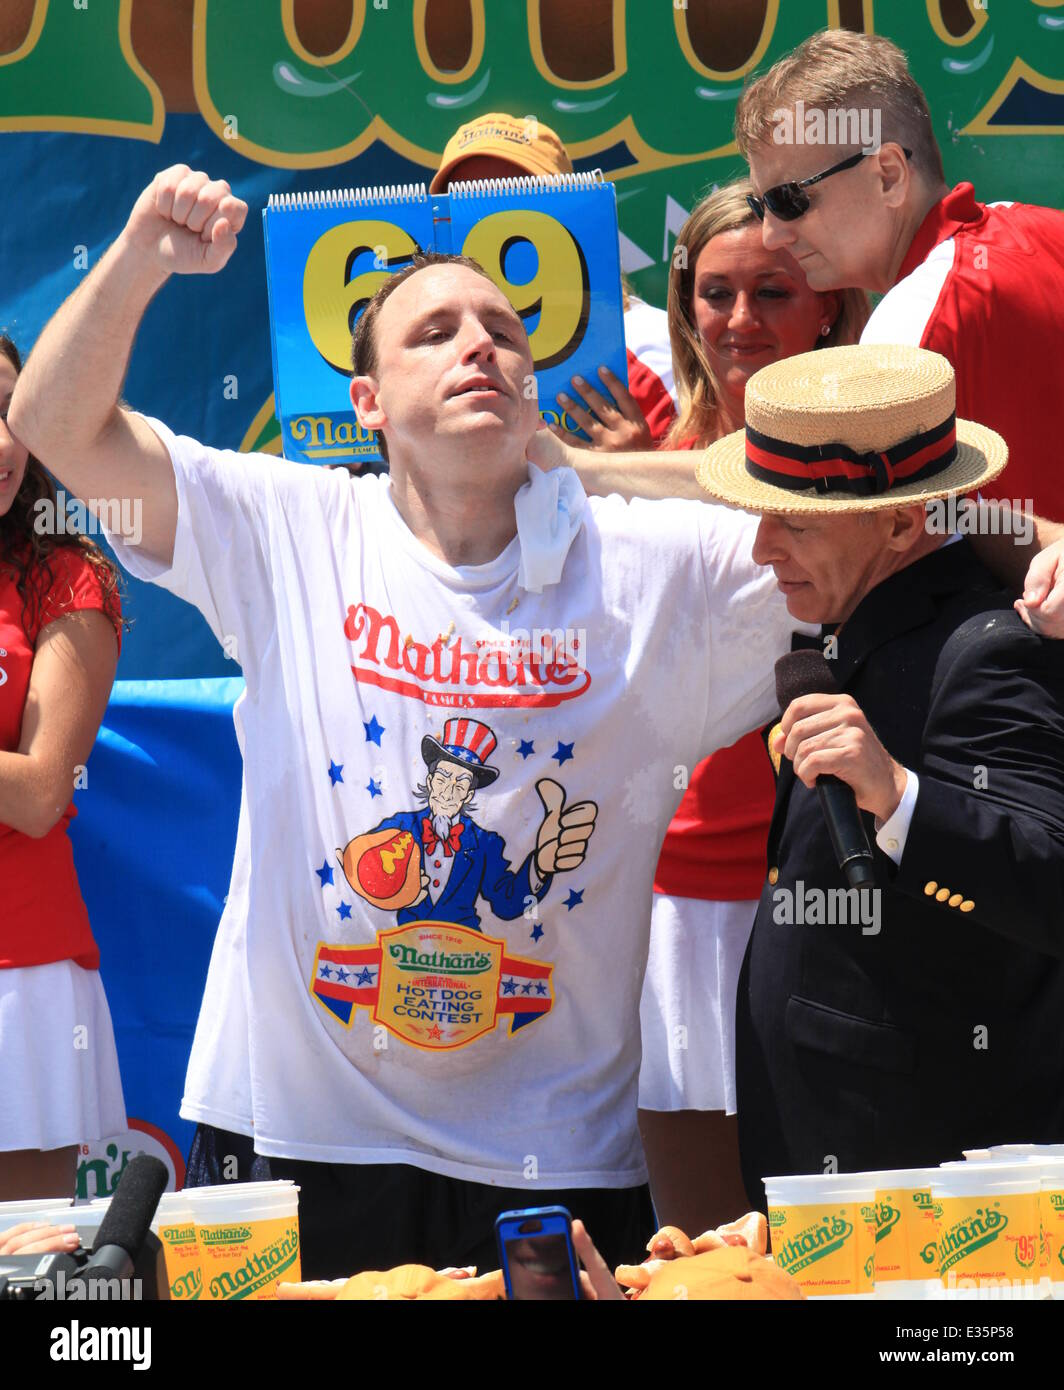 2013 Nathan S Hot Dog Eating Contest Winner Joey Chestnut